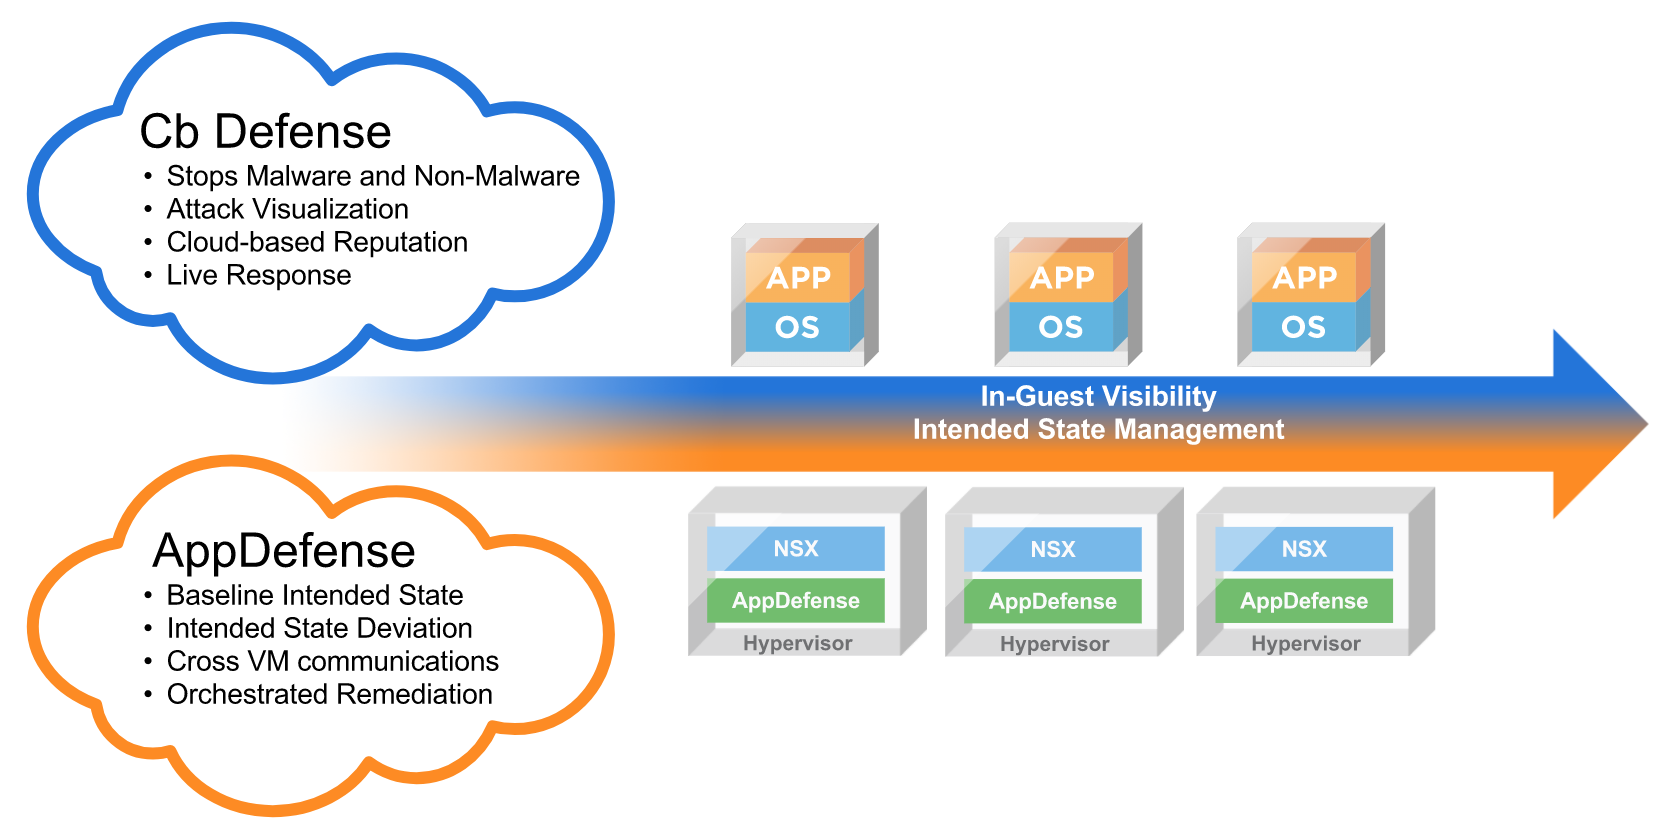 Carbon Black \u0026 VMware Announce General Availability of Integrated